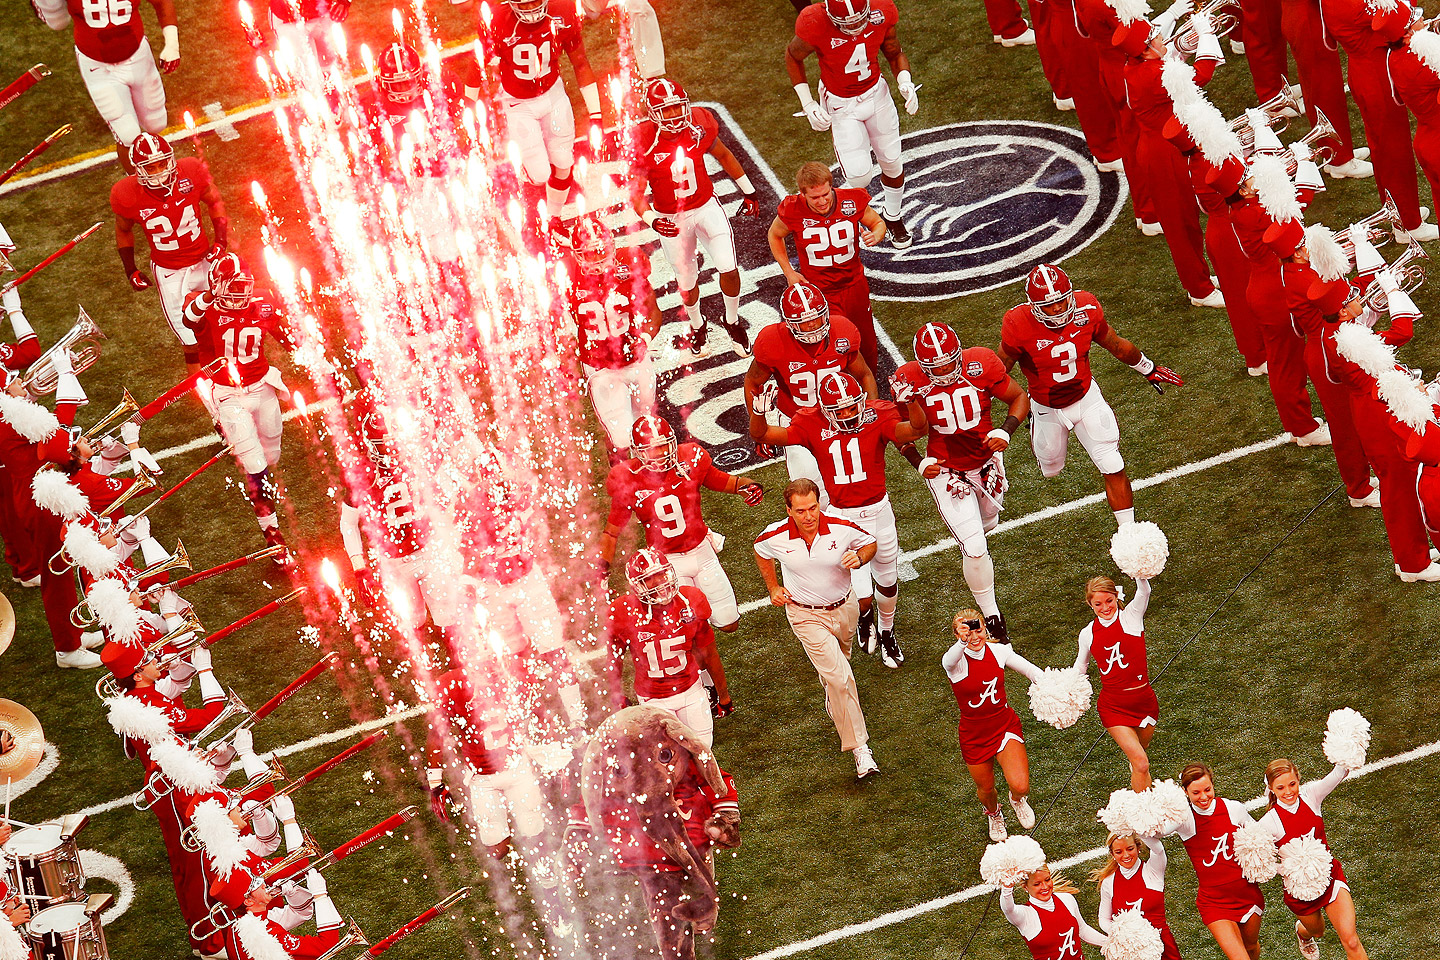 Alabama Take the Field   BCS Championship Game   ESPN 1440x960